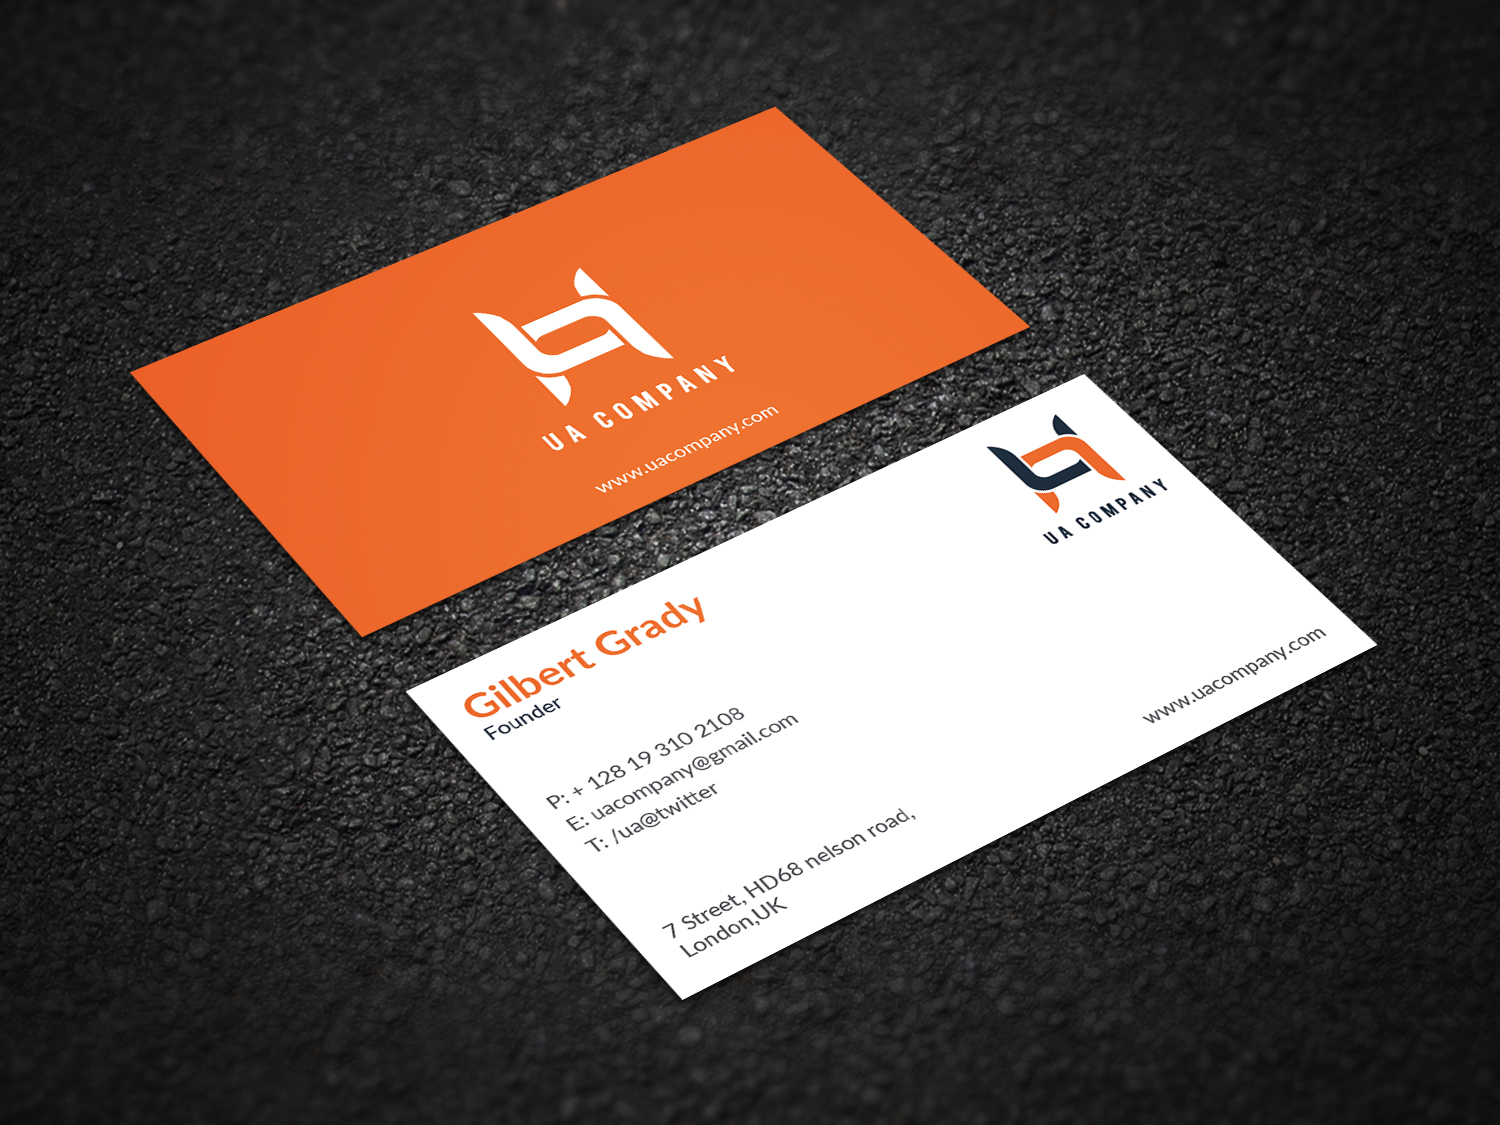 I will do corporate minimalist business card design within 24 hours